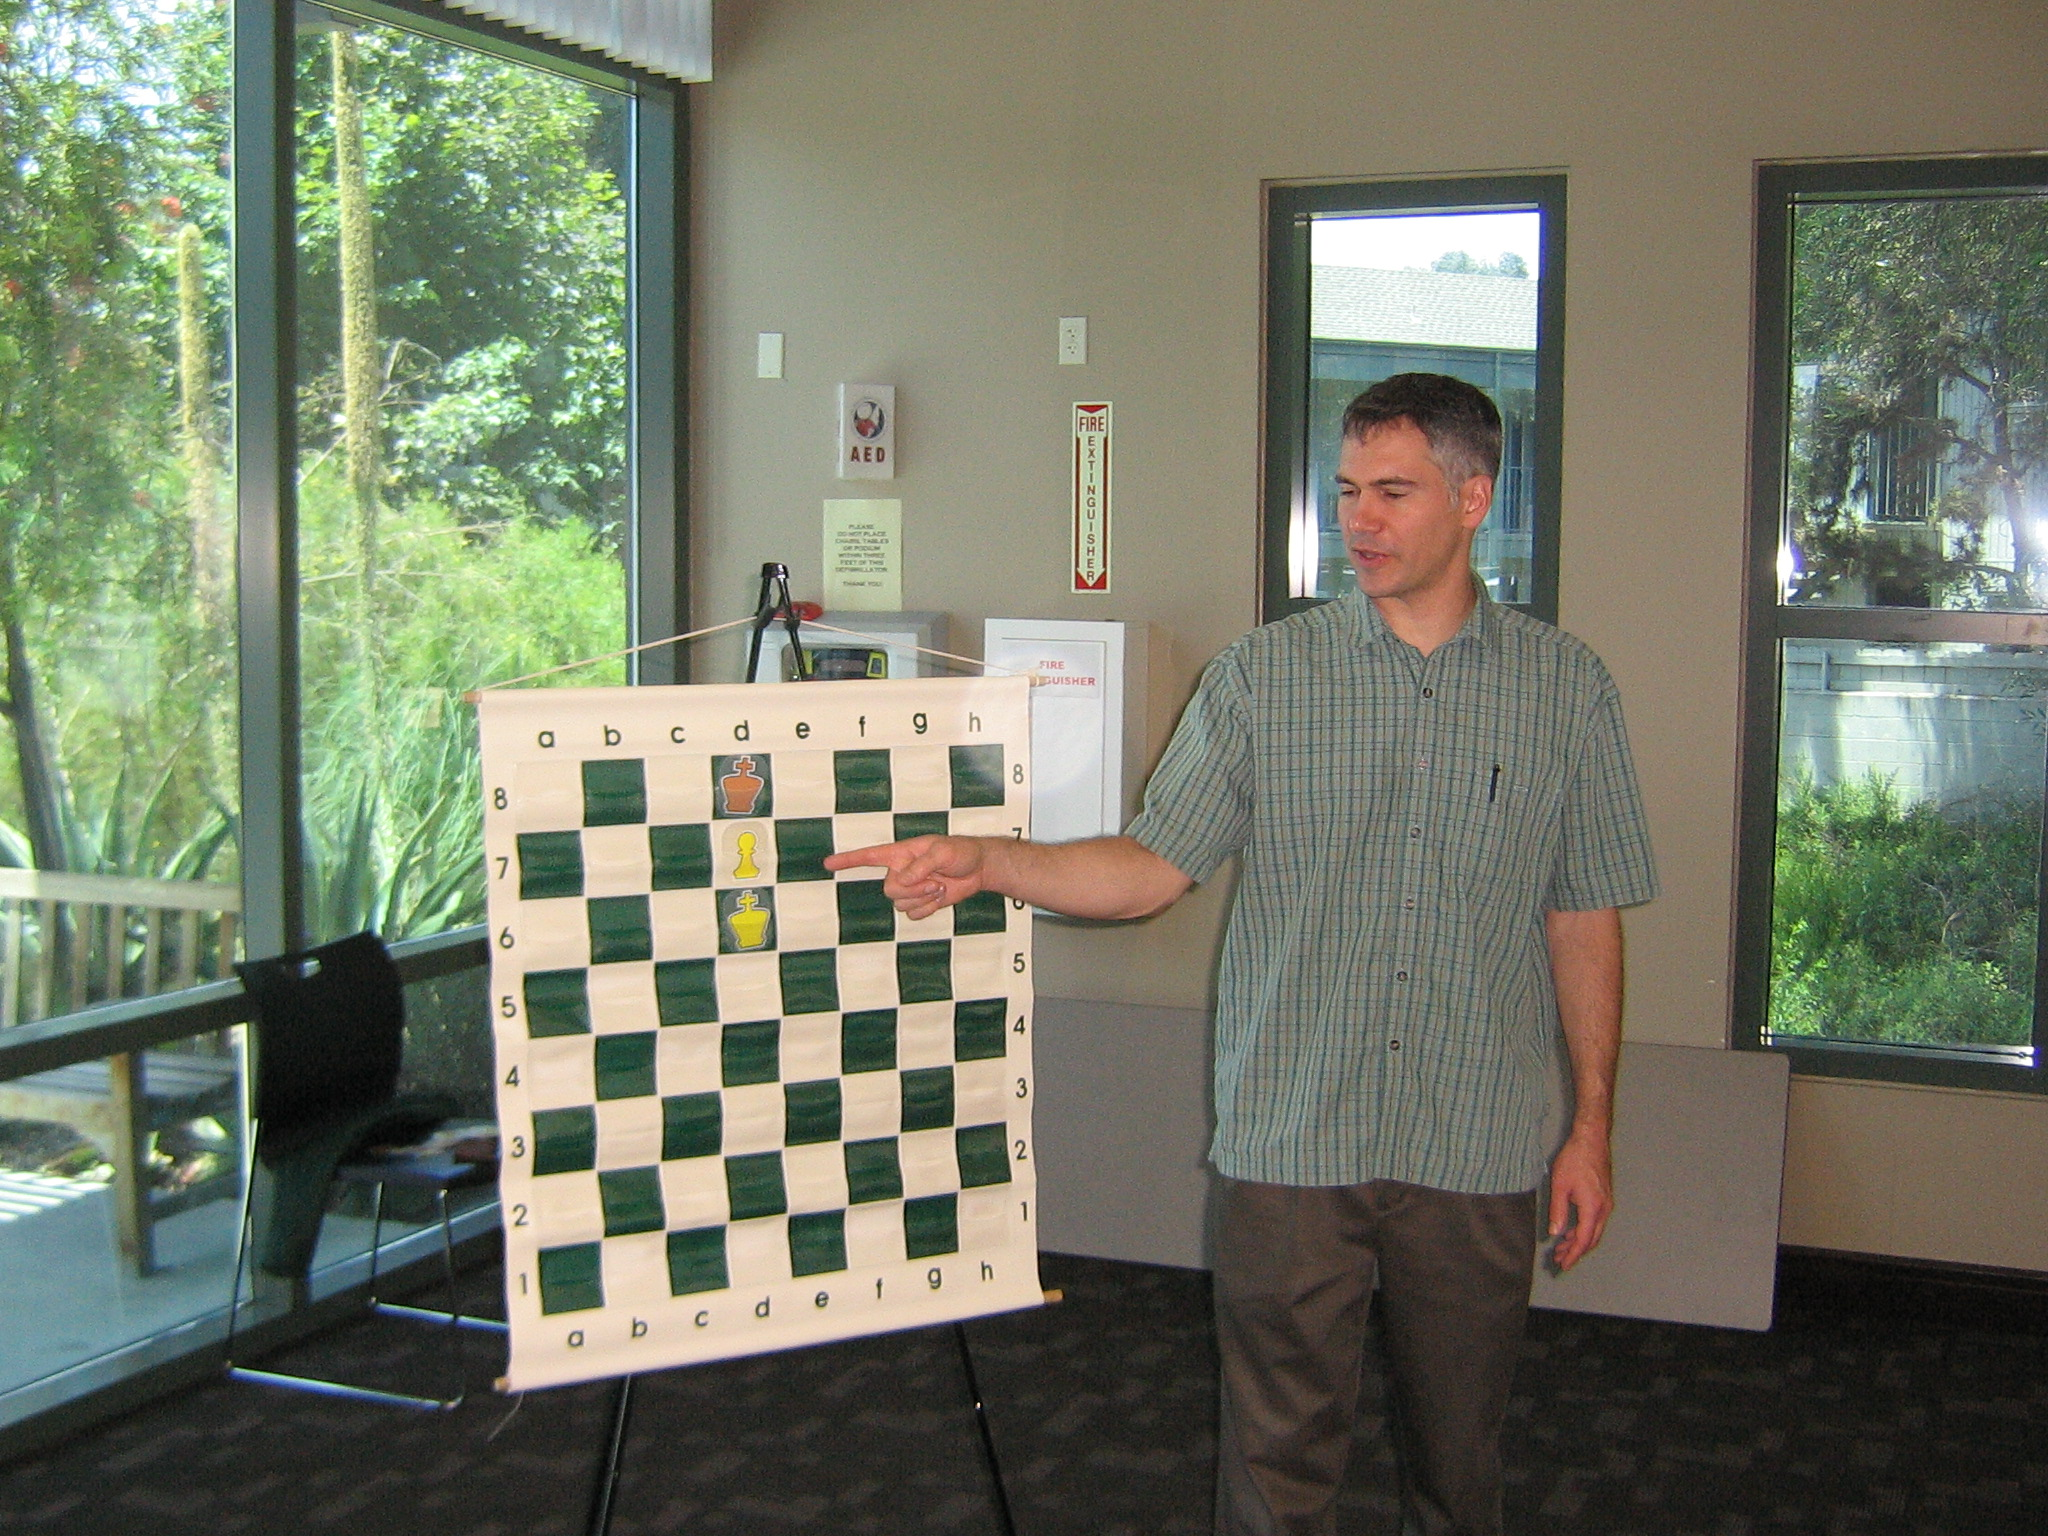 http://www.chessinstructor.net/blog/wp-content/uploads/2010/06/IMG_3488.jpg